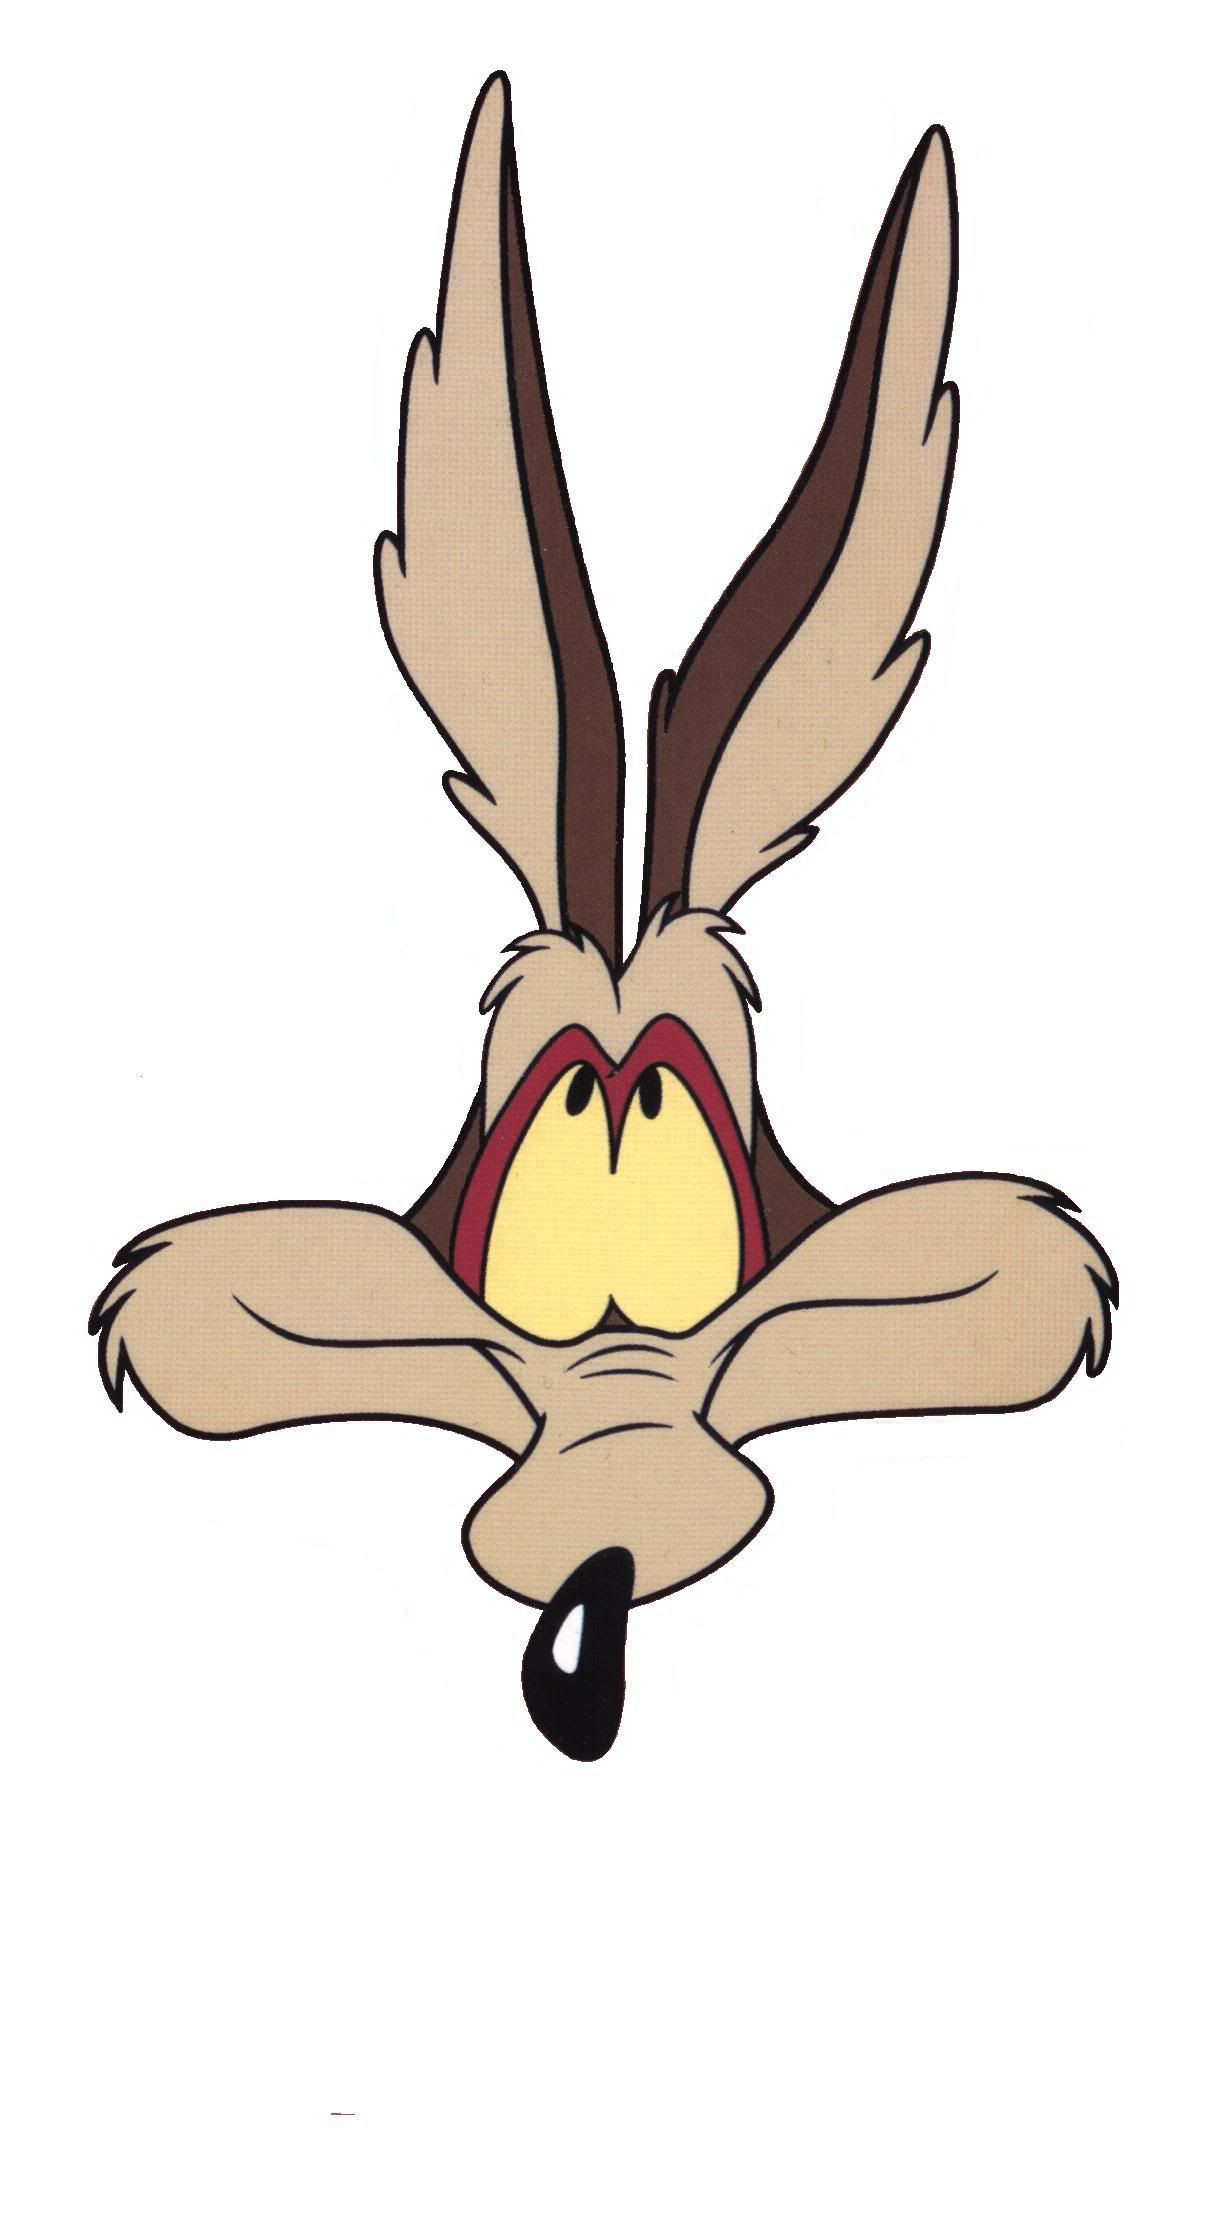 wile e coyote | looney tunes: wile e coyote | pinterest | cartoon